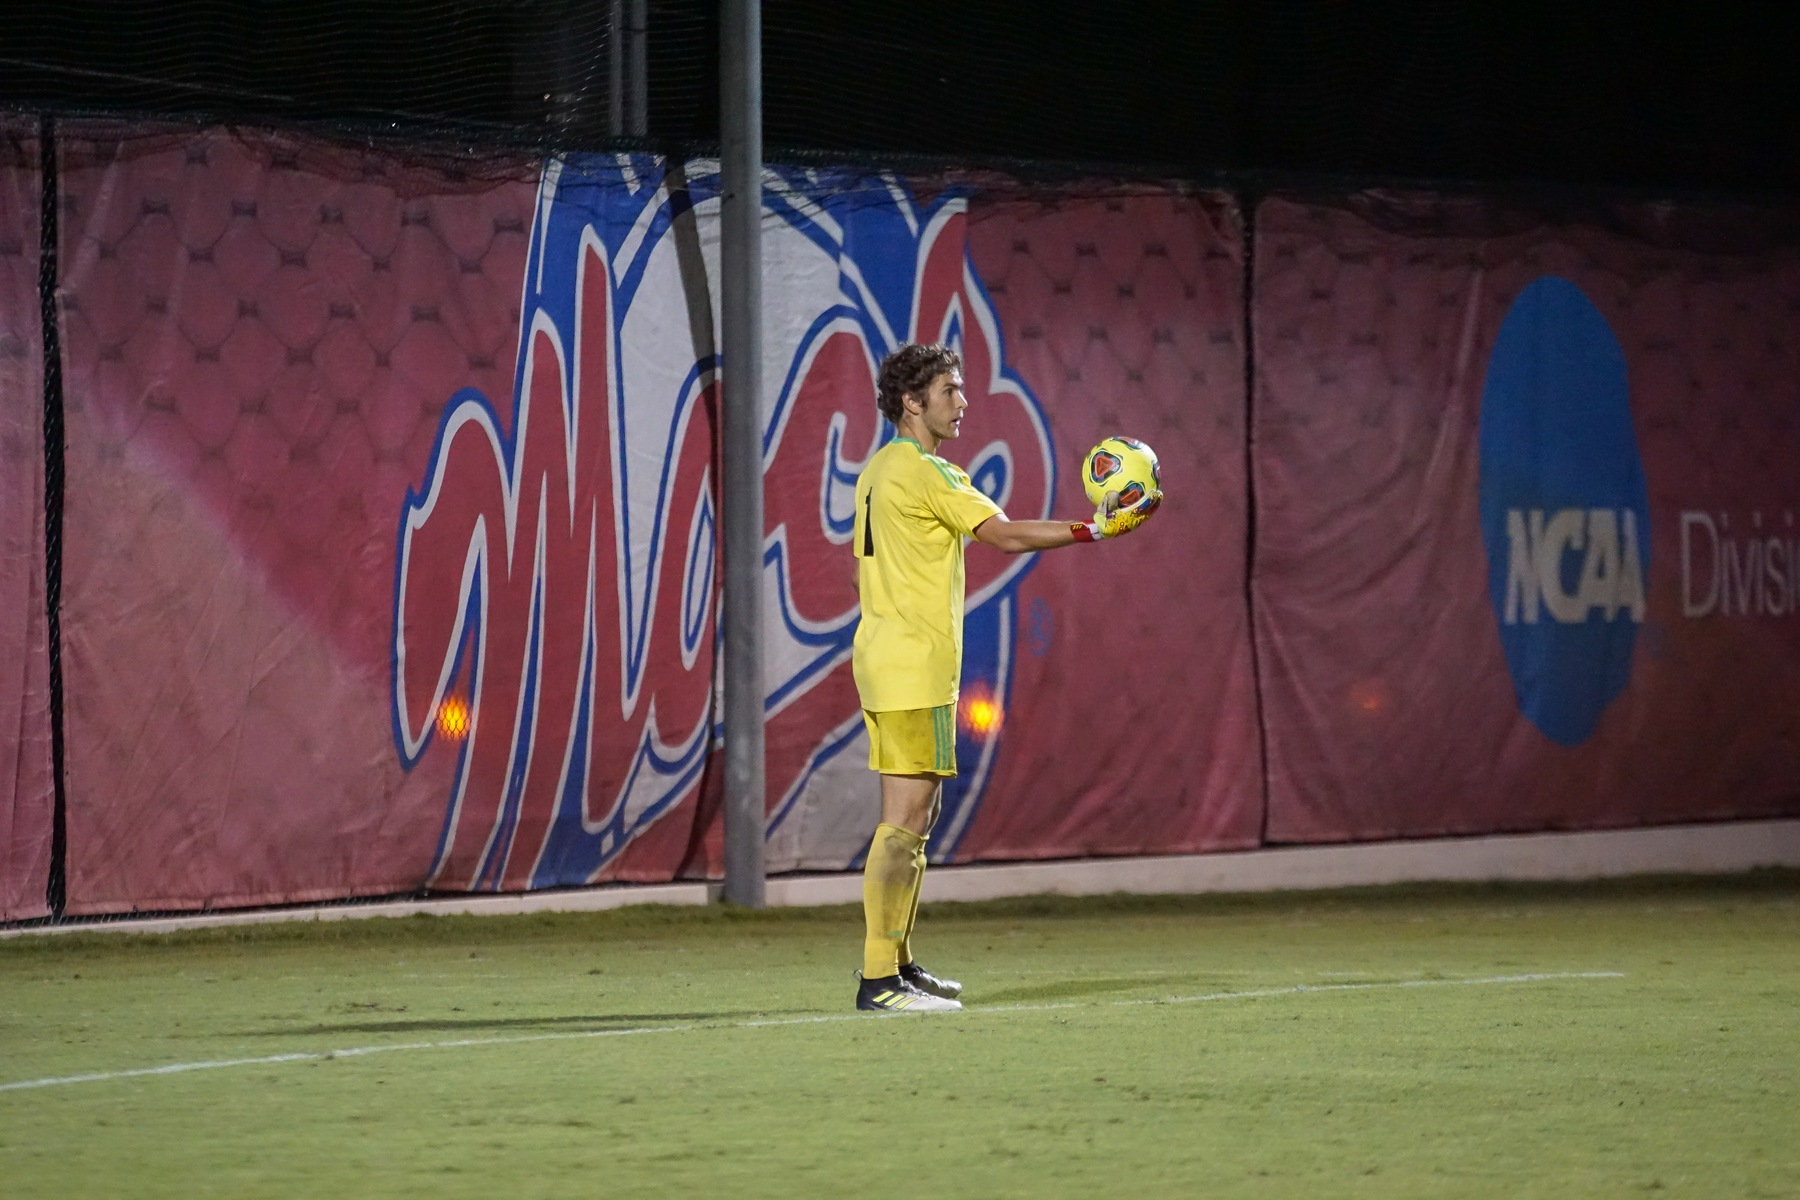 FSC Men's Soccer Ends Season with 3-0 Loss to PBA in SSC Tournament Quarterfinals